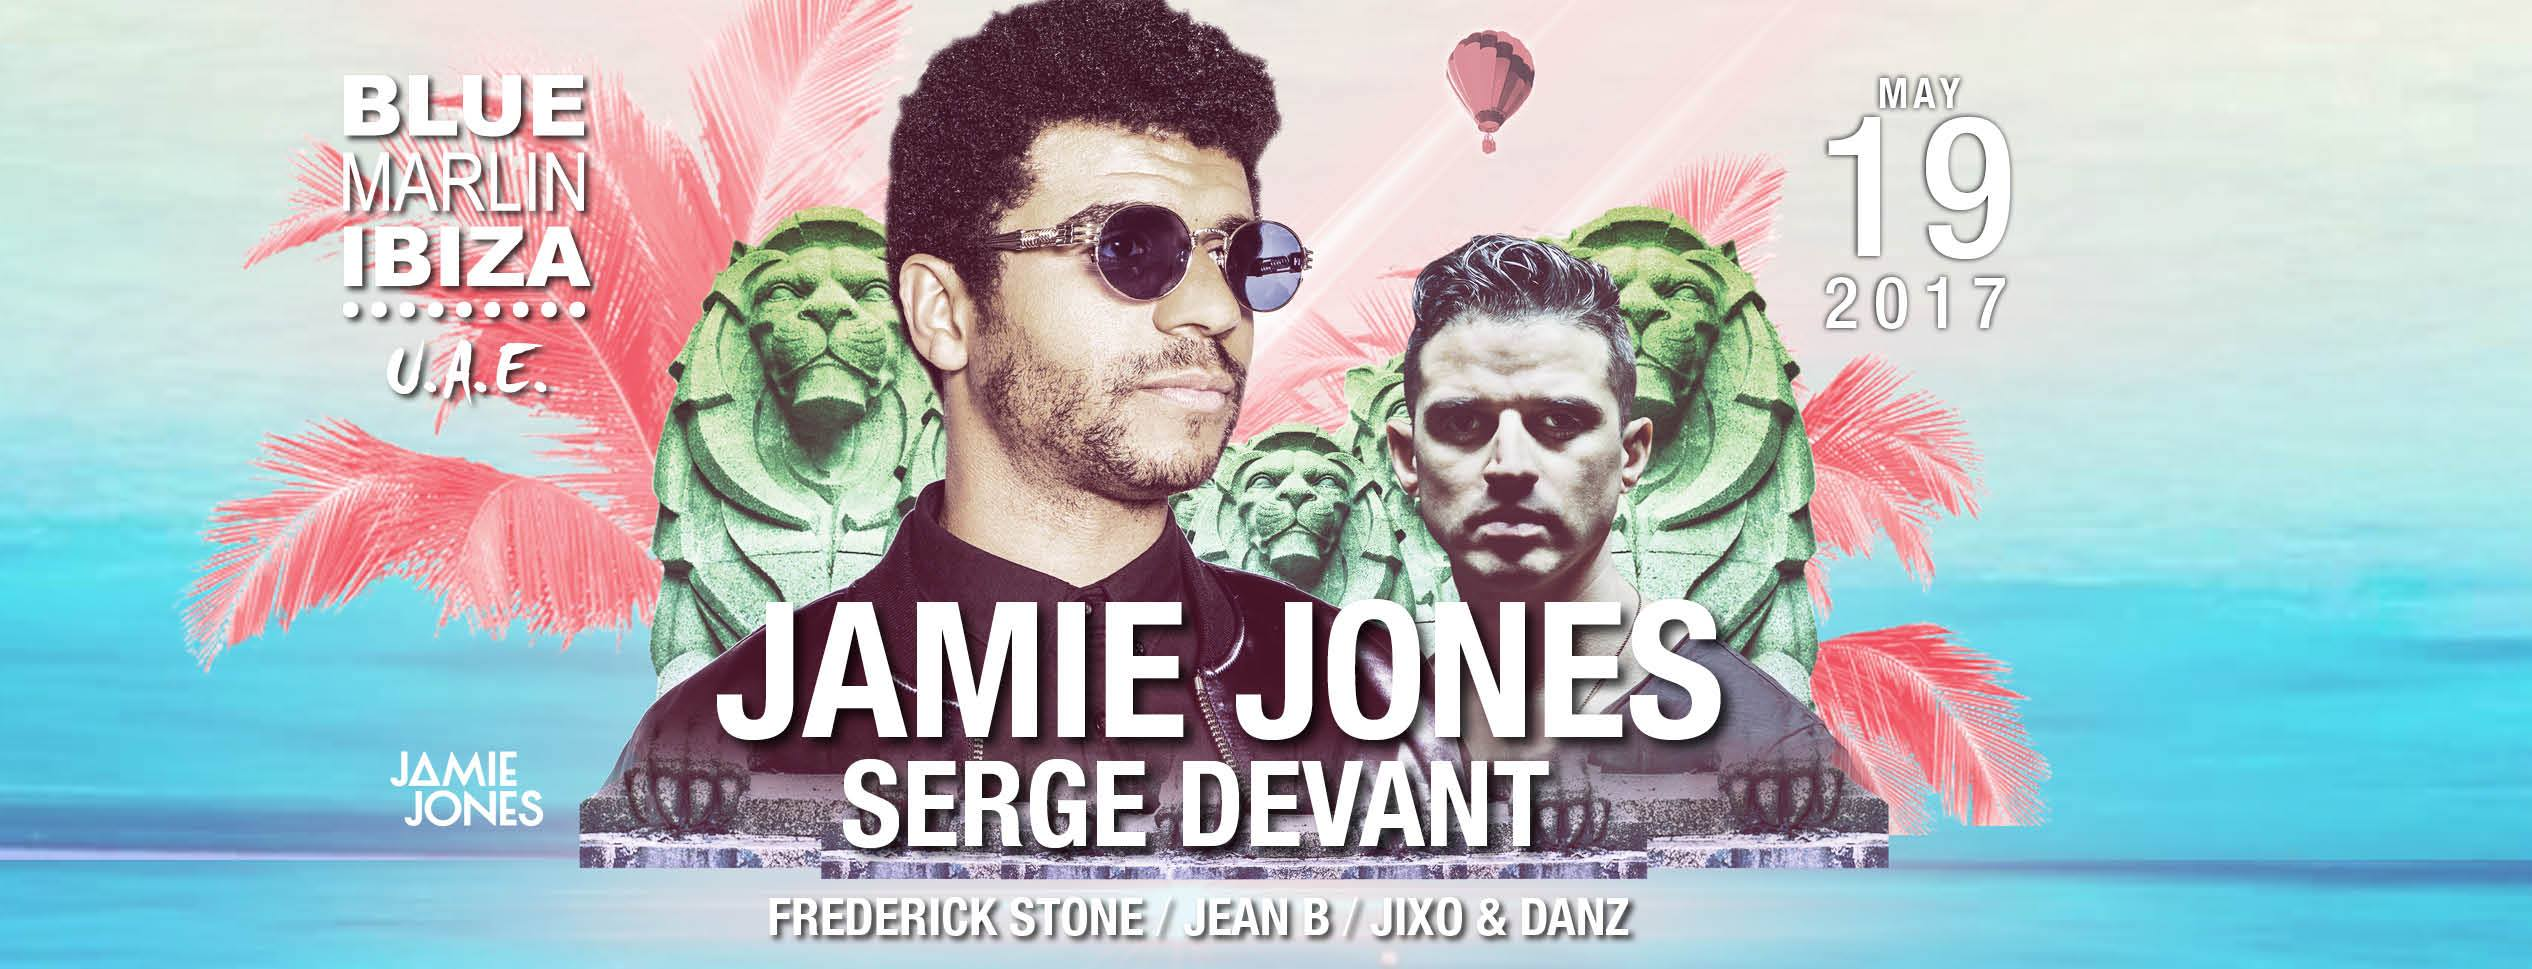 Jamie Jones and Serge Devant @  Blue Marlin Ibiza UAE